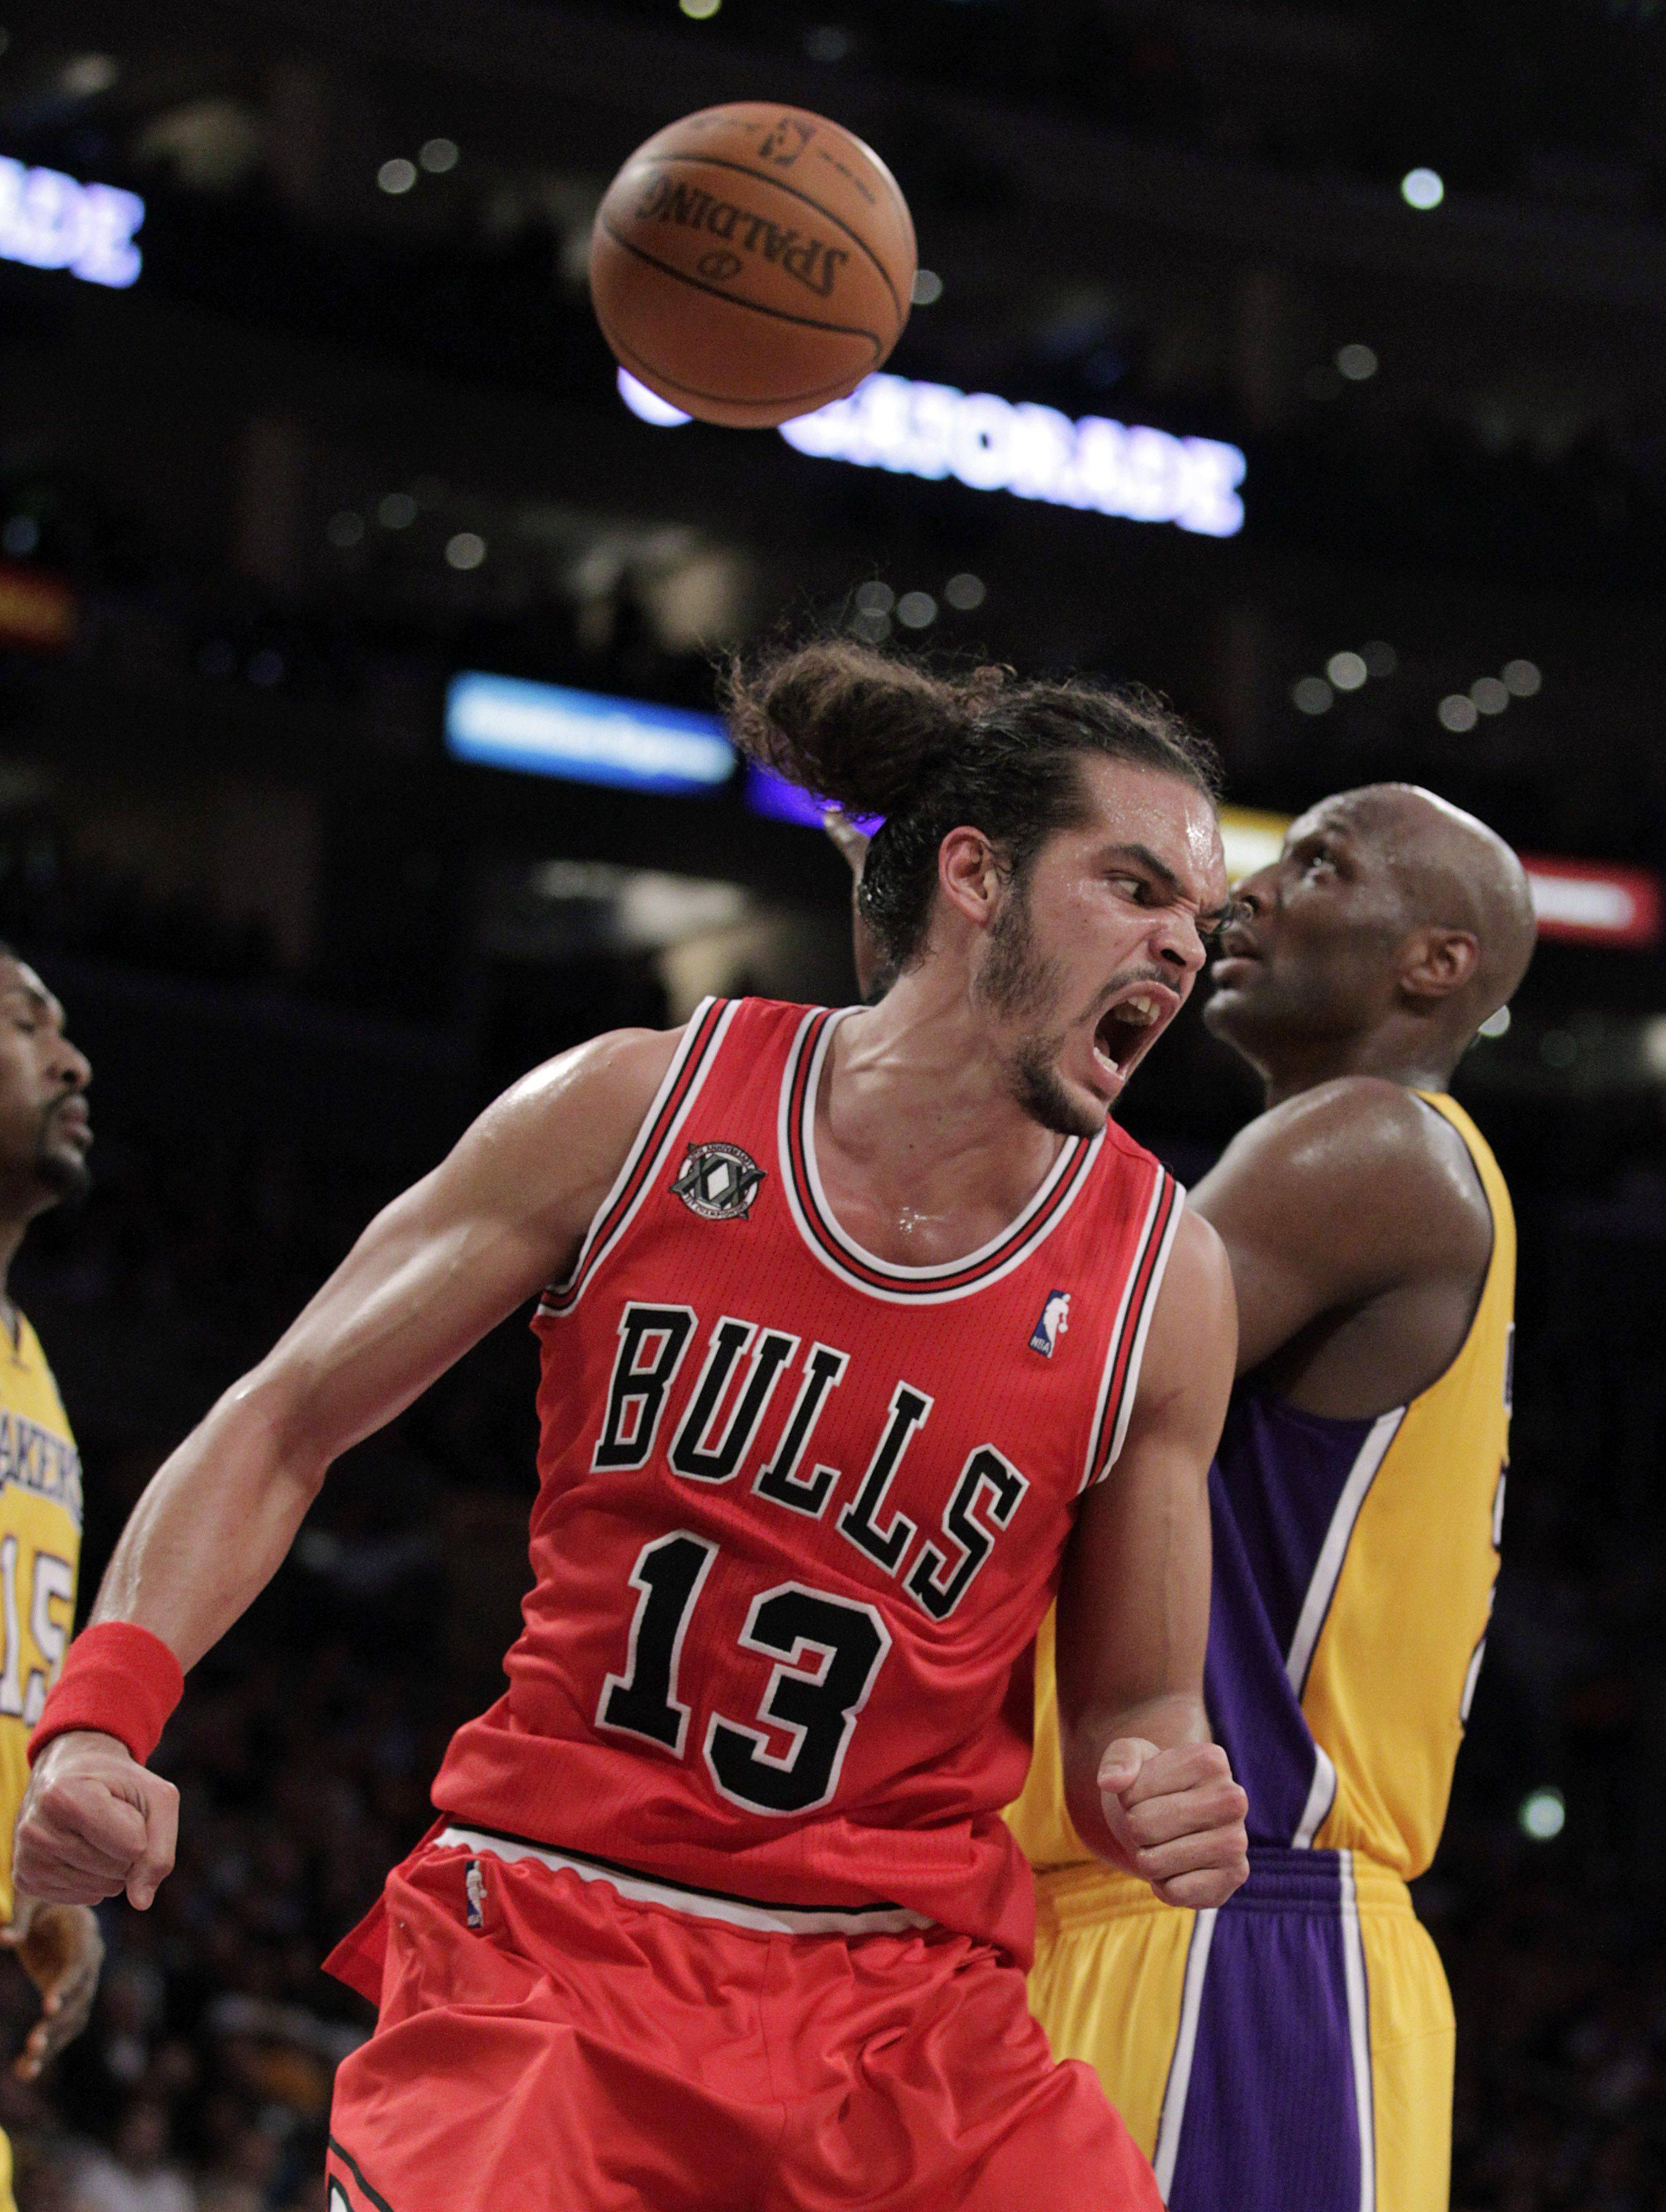 Center Joakim Noah will be back on the floor Wednesday night for Bulls after missing 30 games with a thumb injury.